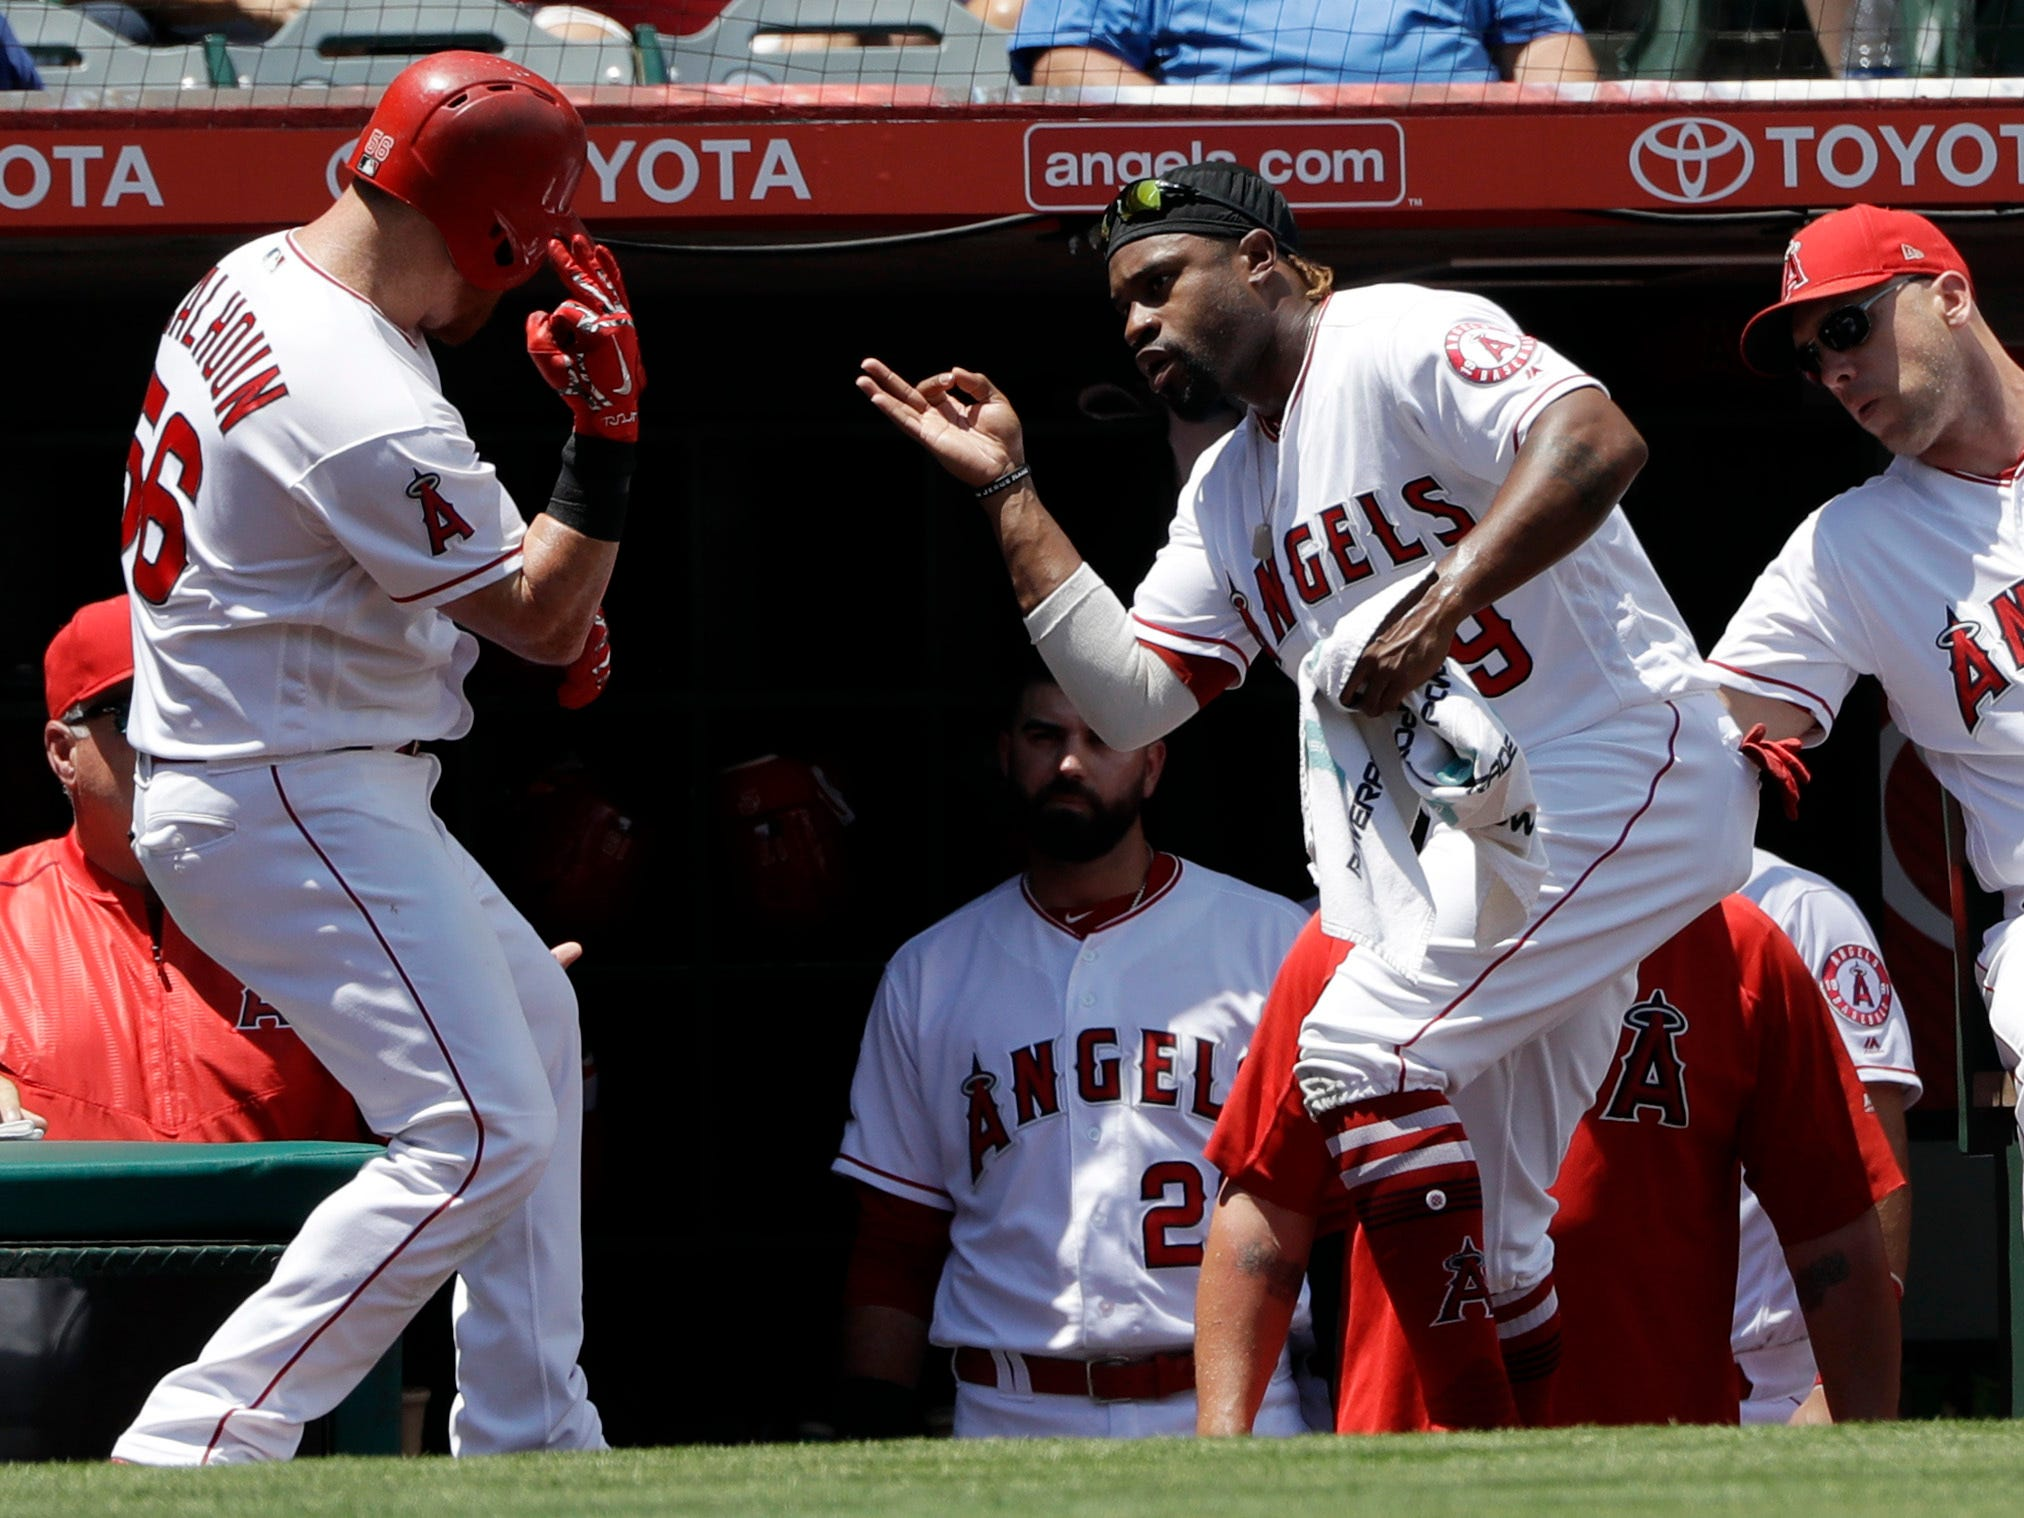 Los Angeles Angels' Kole Calhoun, left, celebrates his solo home run with teammate Nicolas Castellans during the first inning of a baseball game against the Detroit Tigers, Wednesday, Aug. 8, 2018, in Anaheim, Calif.